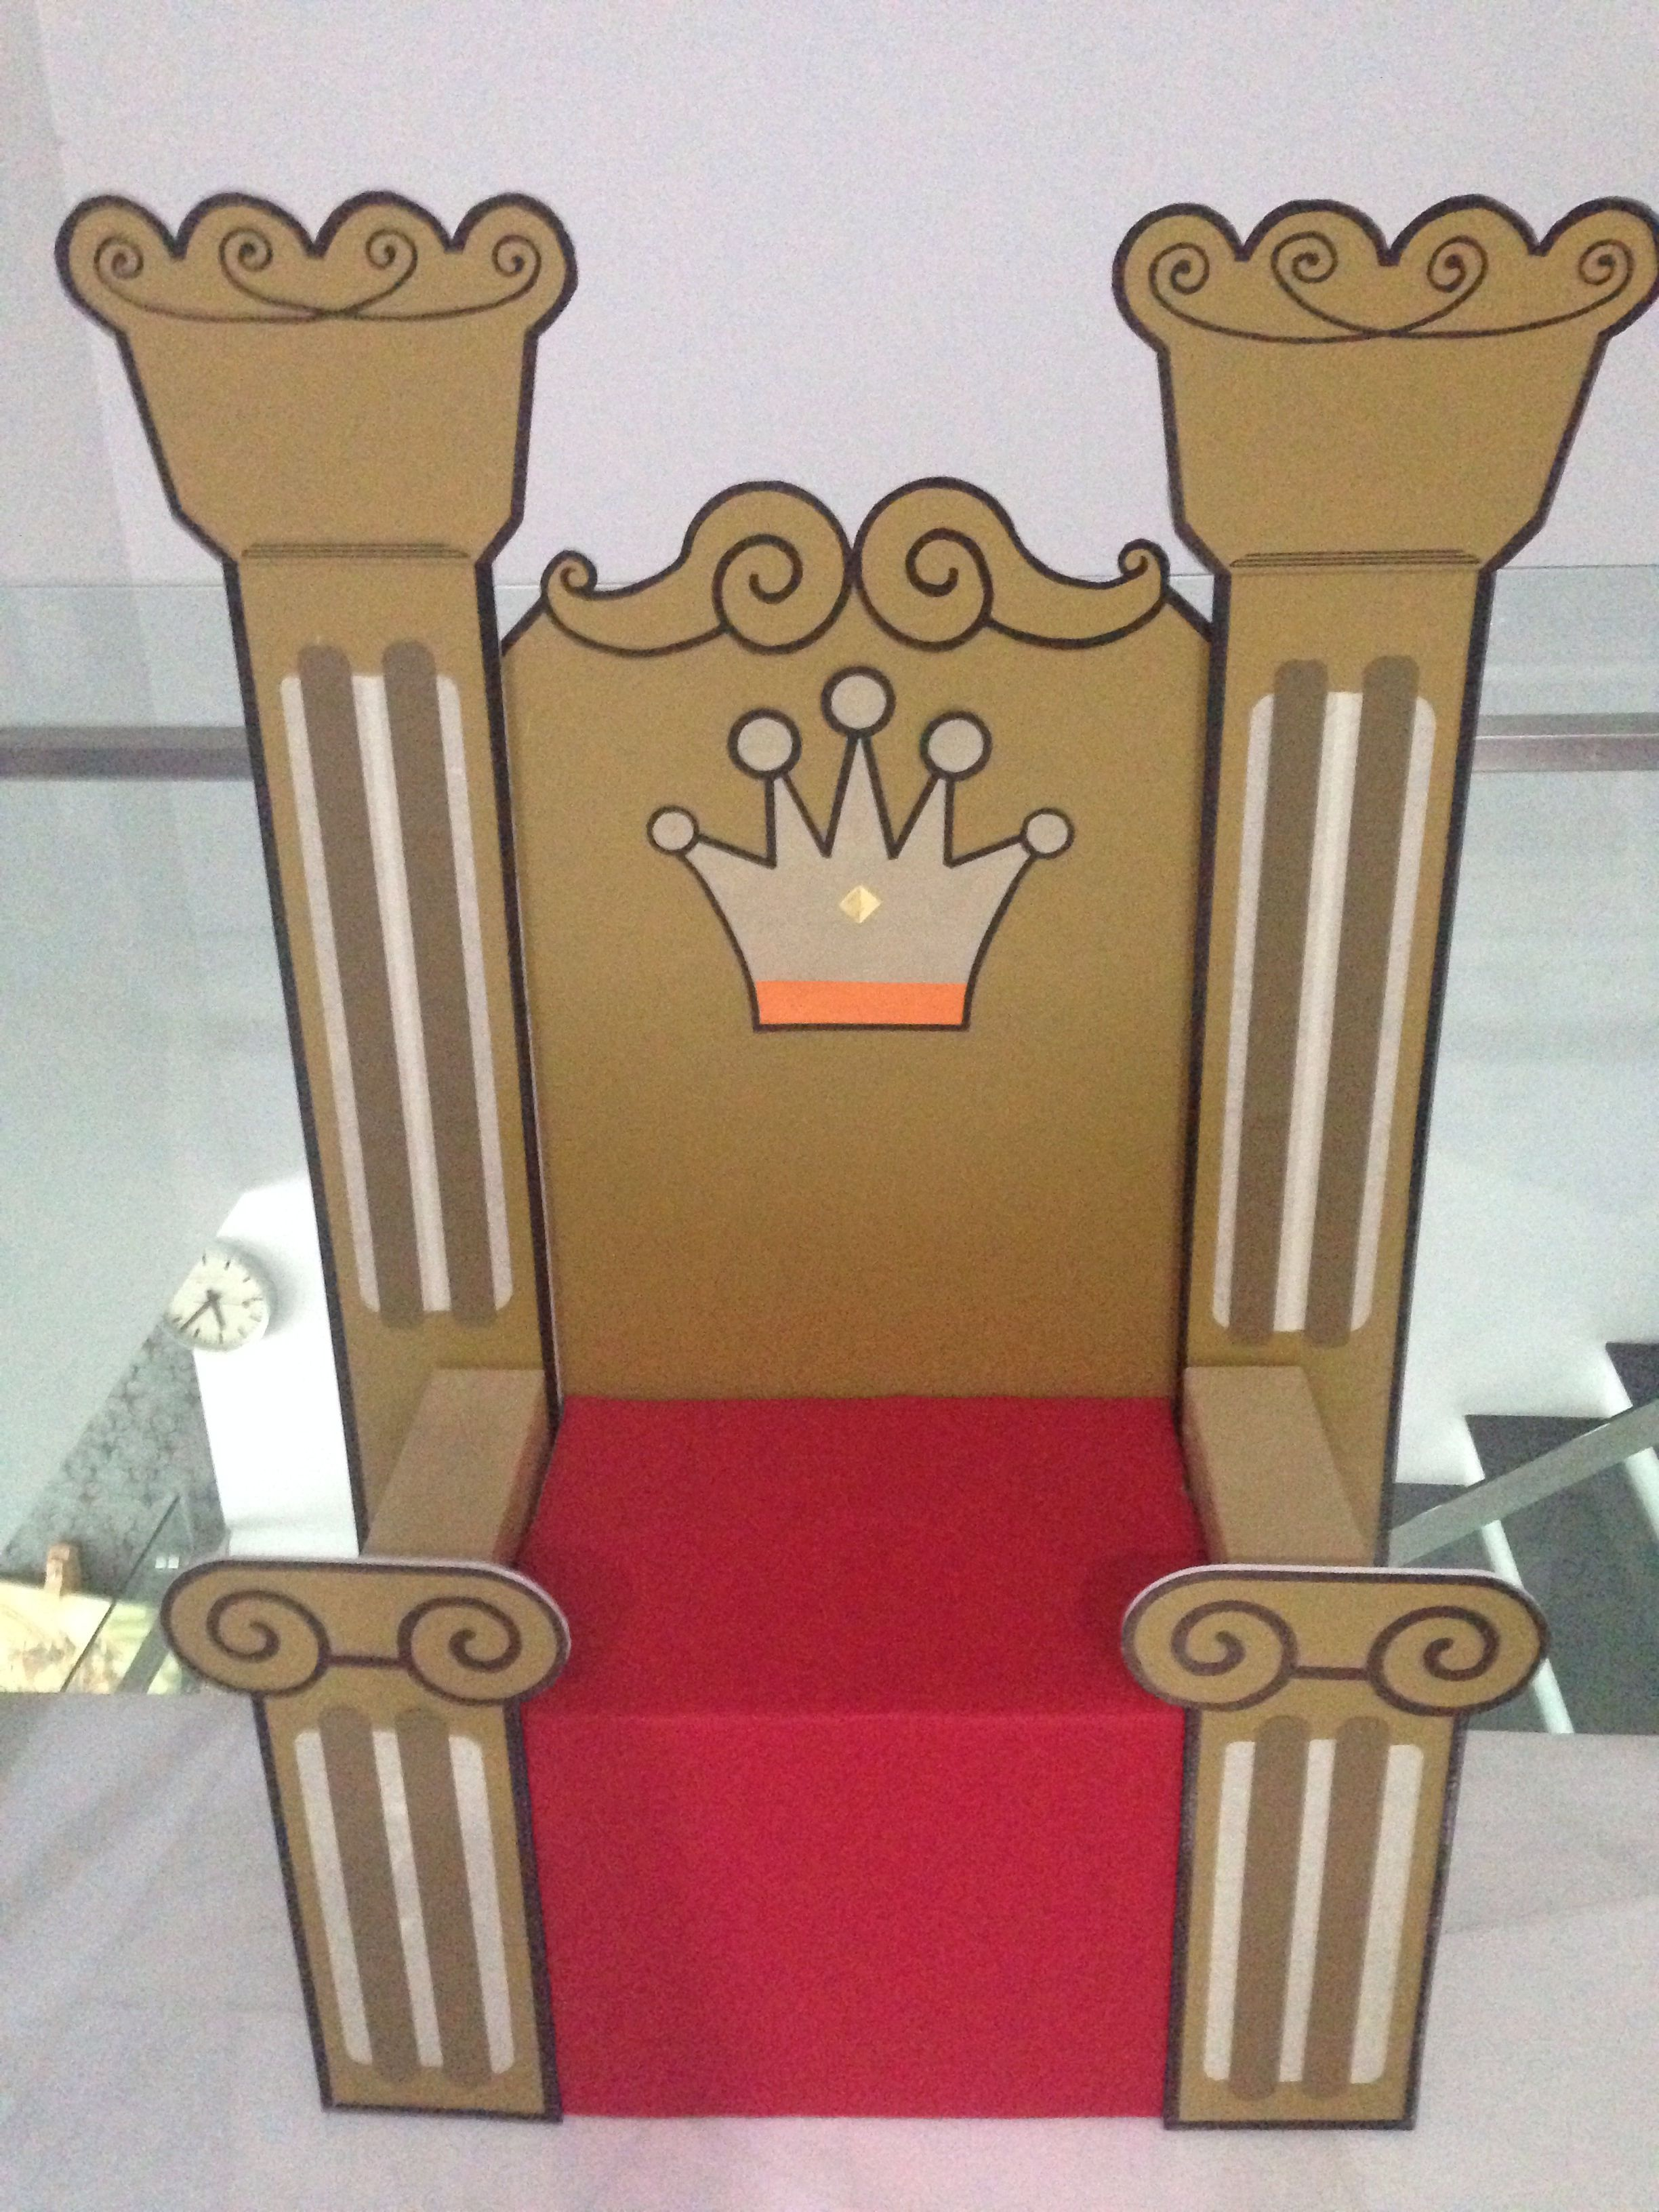 how to make a queen throne chair cover and sash hire london speech drama props king favorite diy build